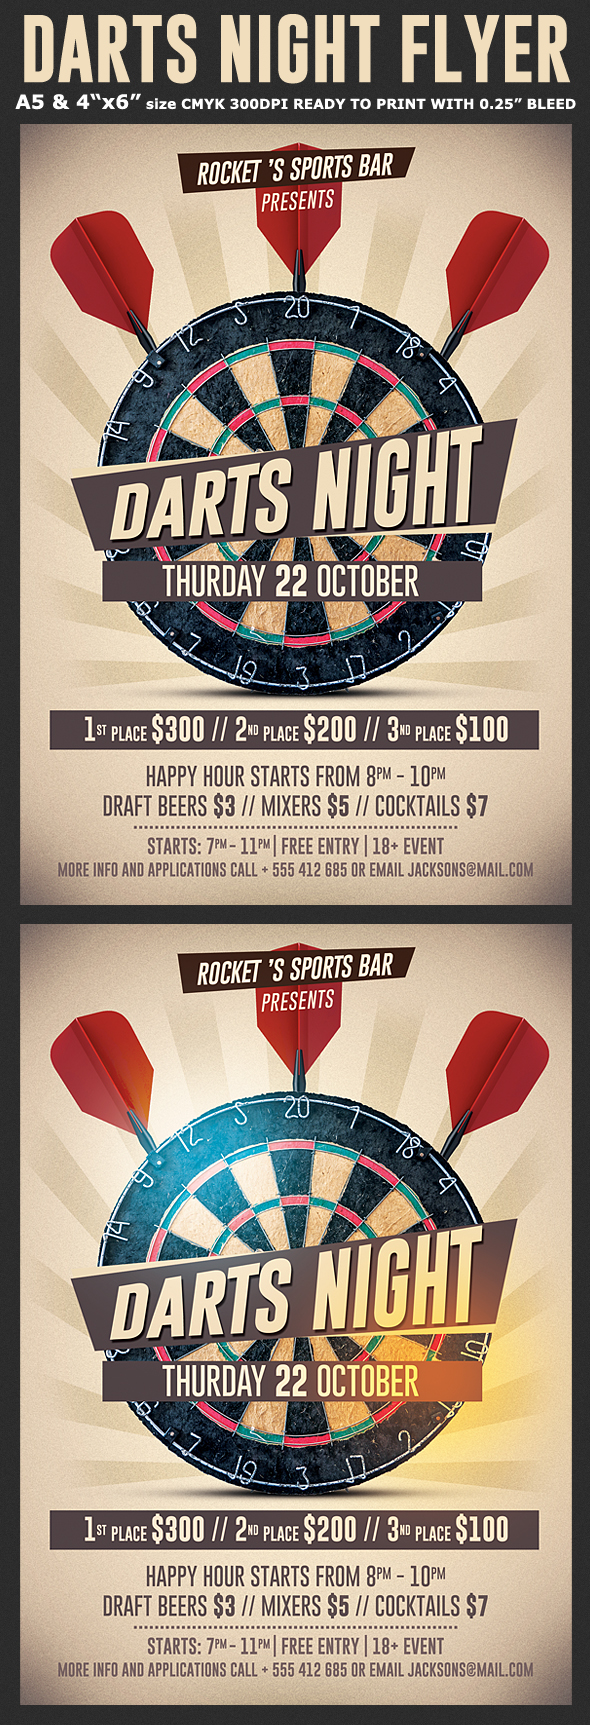 darts night flyer template on pantone canvas gallery